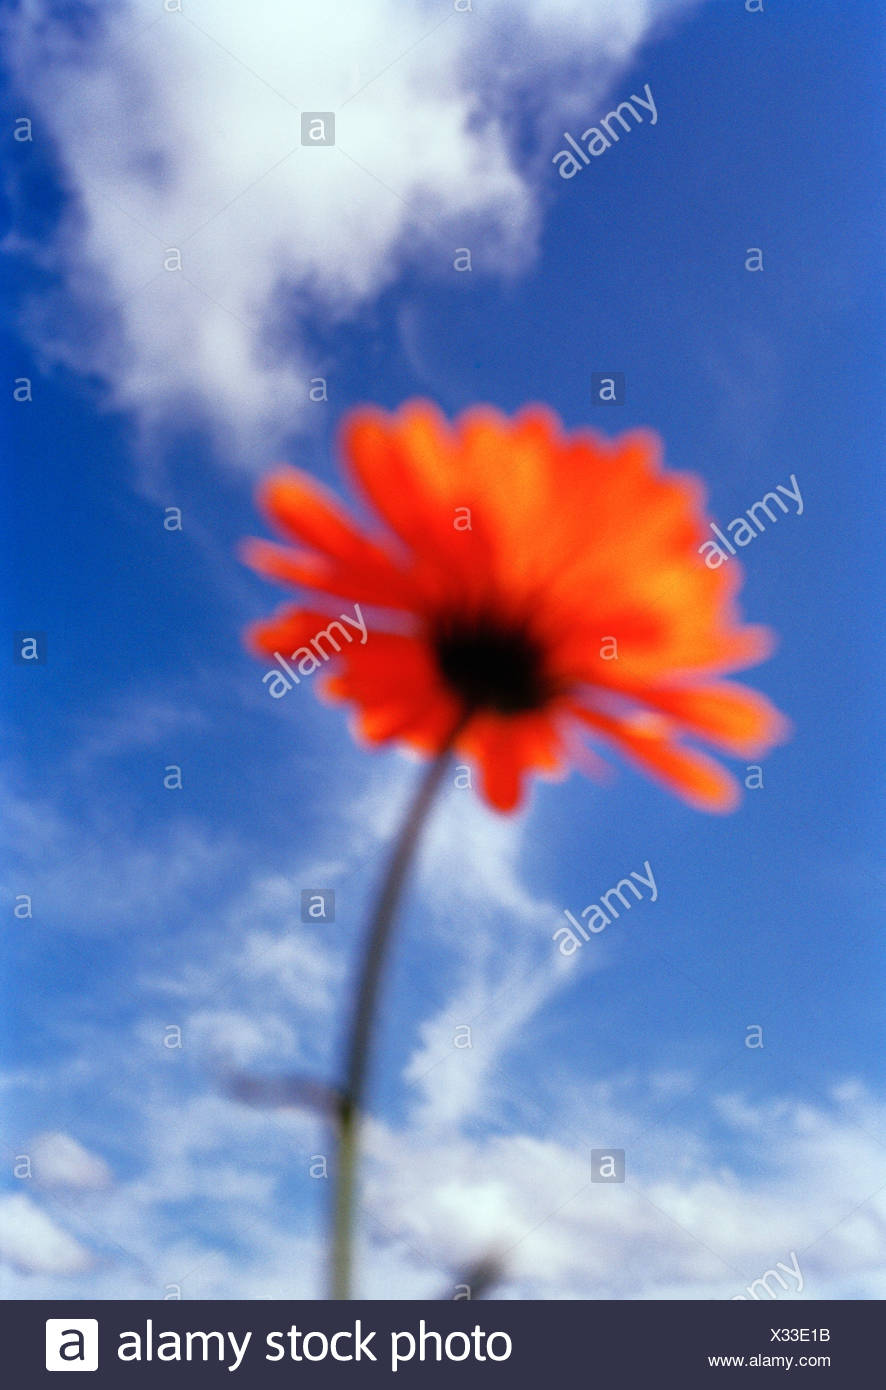 A red flower and a blue sky, Sweden. - Stock Image